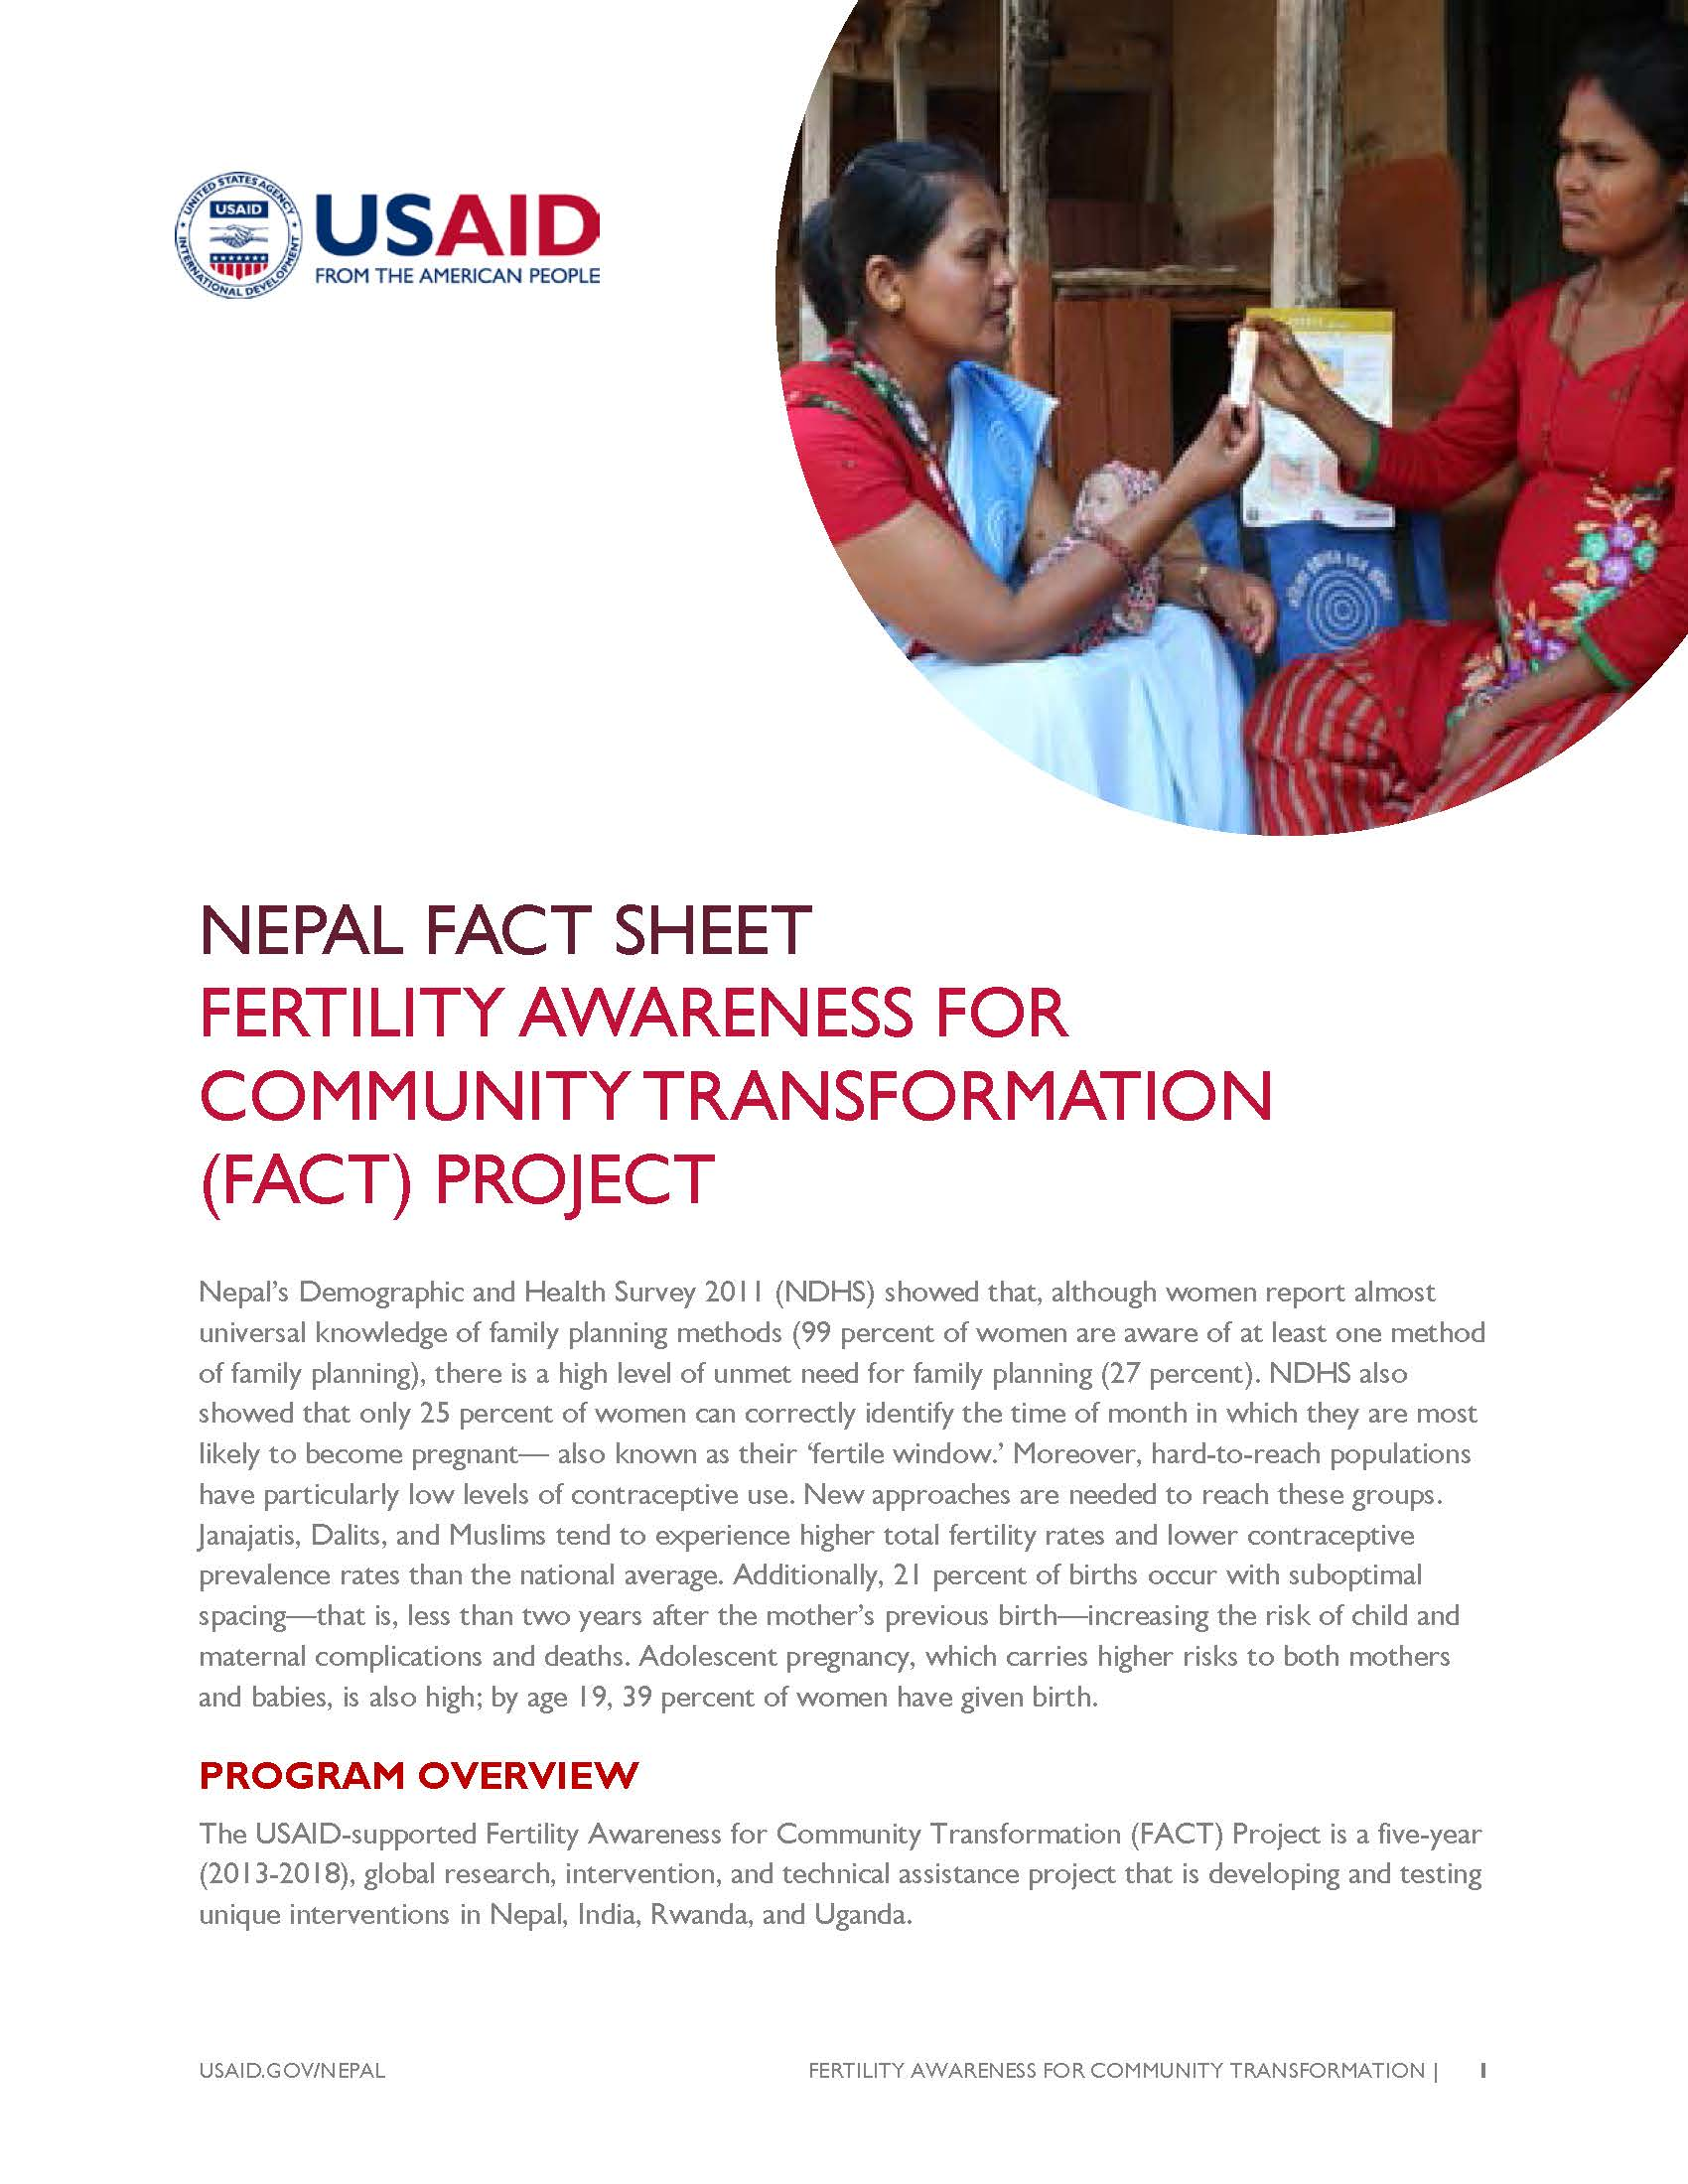 FACTSHEET:  FERTILITY AWARENESS FOR COMMUNITY TRANSFORMATION (FACT) PROJECT